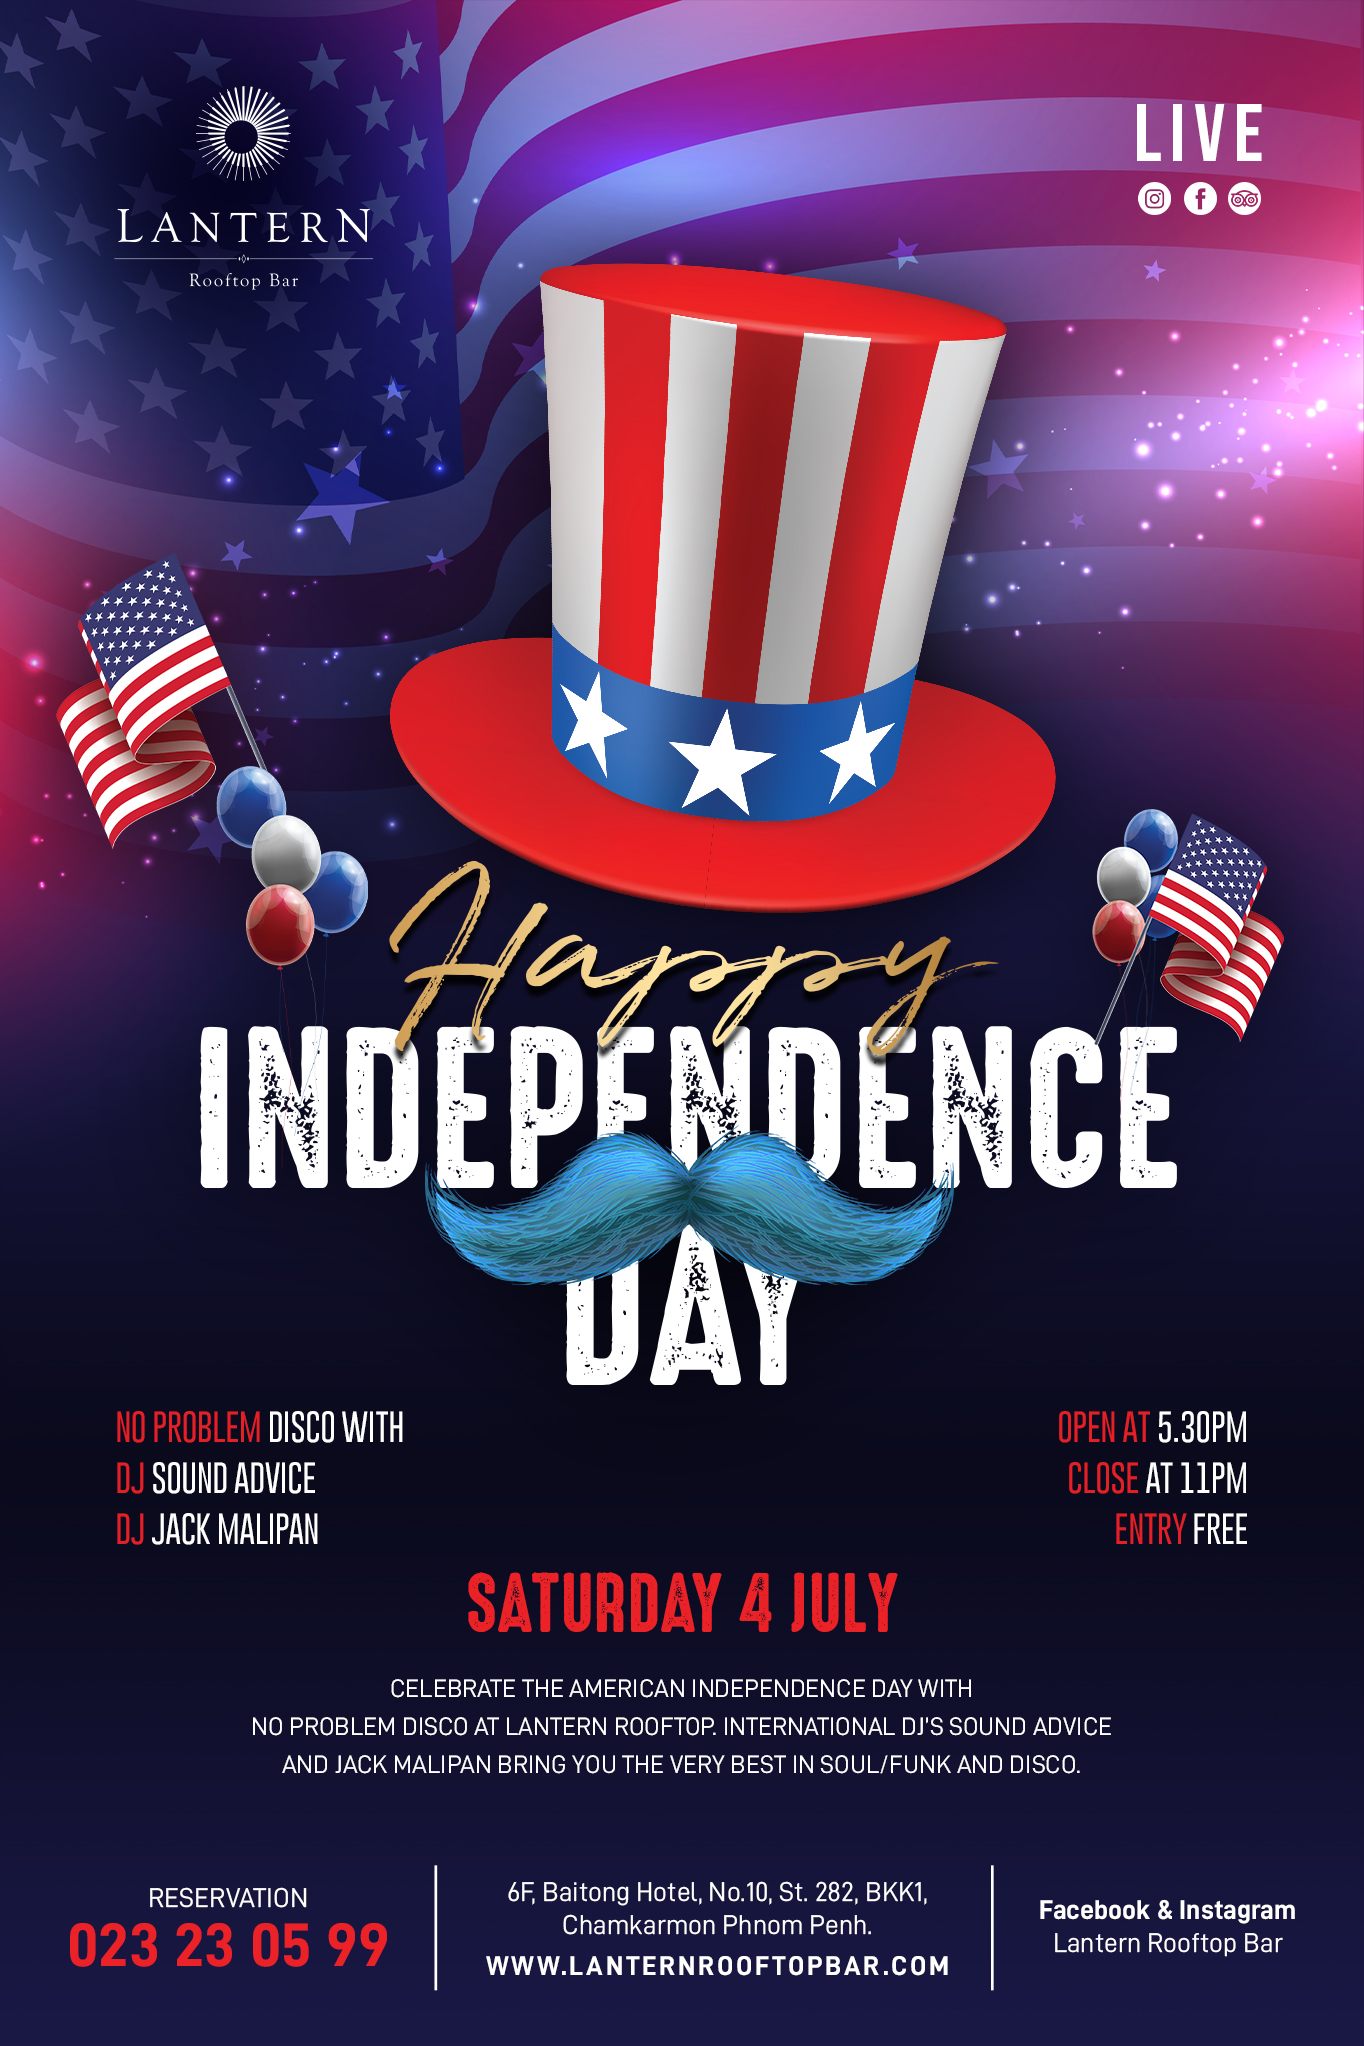 American Independence Day @ Lantern Rooftop Bar - 4 July 2020